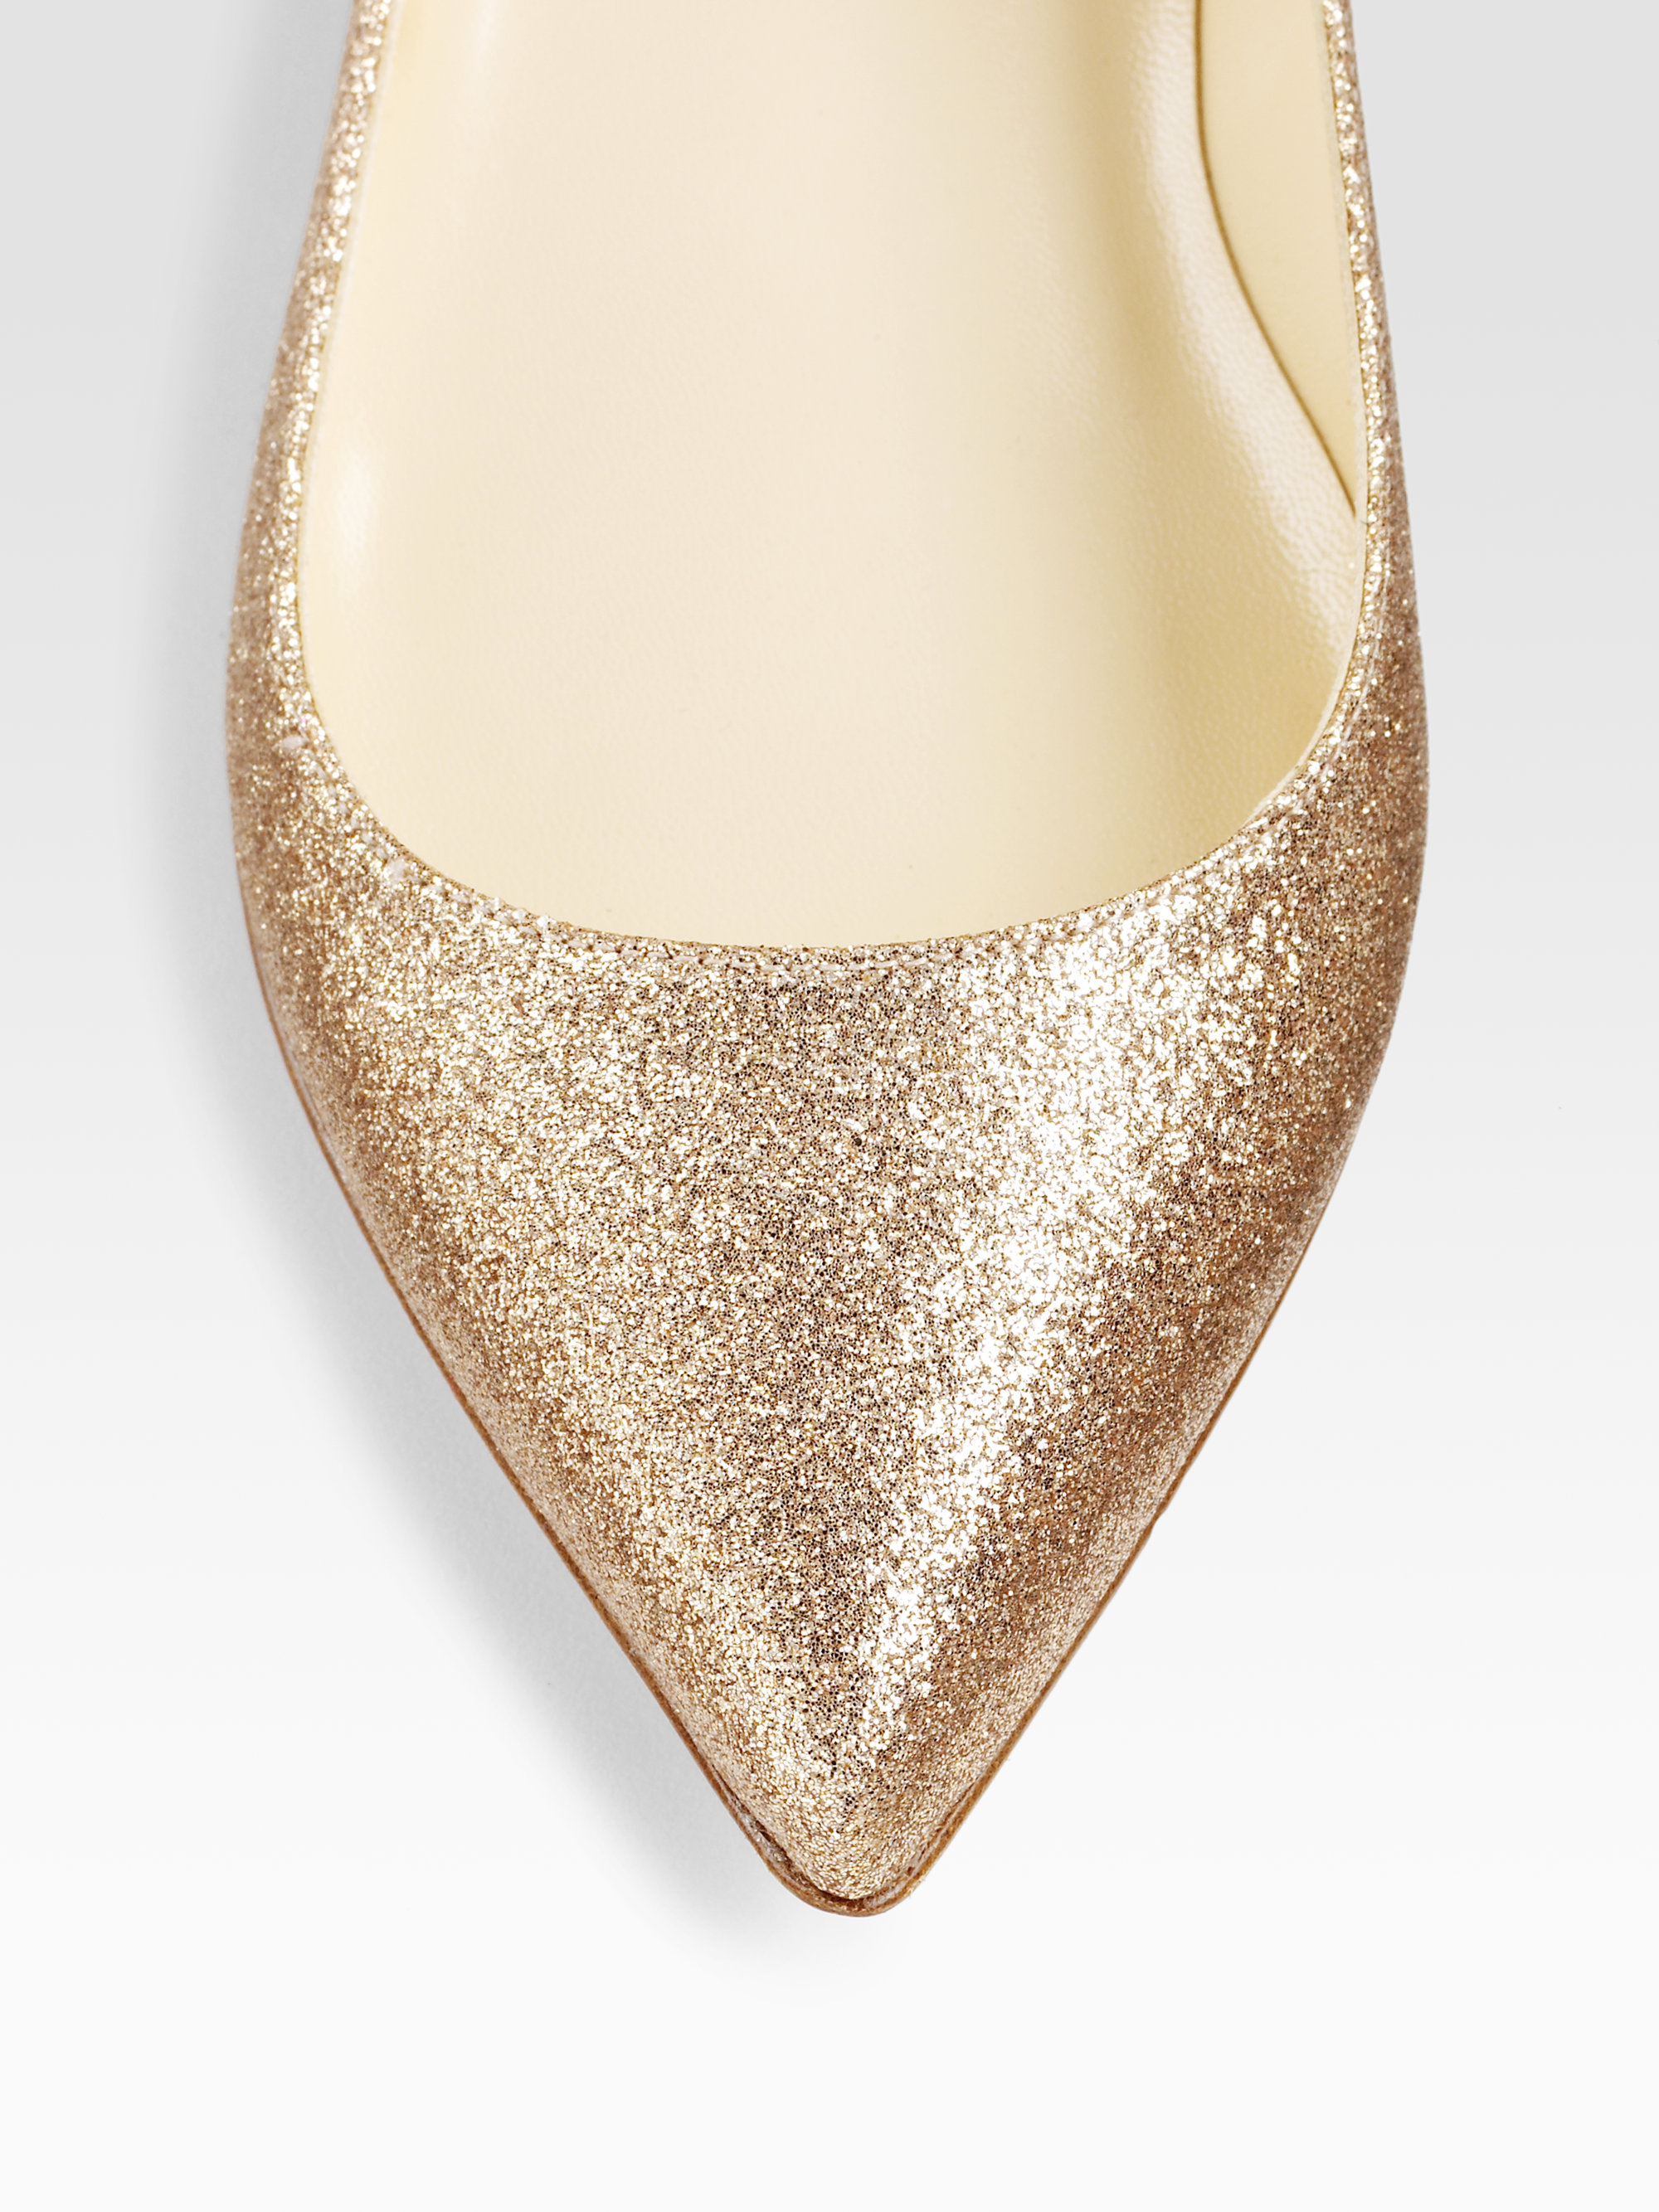 replica louboutin shoes - Christian louboutin Pigalle Glittercovered Leather Ballet Flats in ...